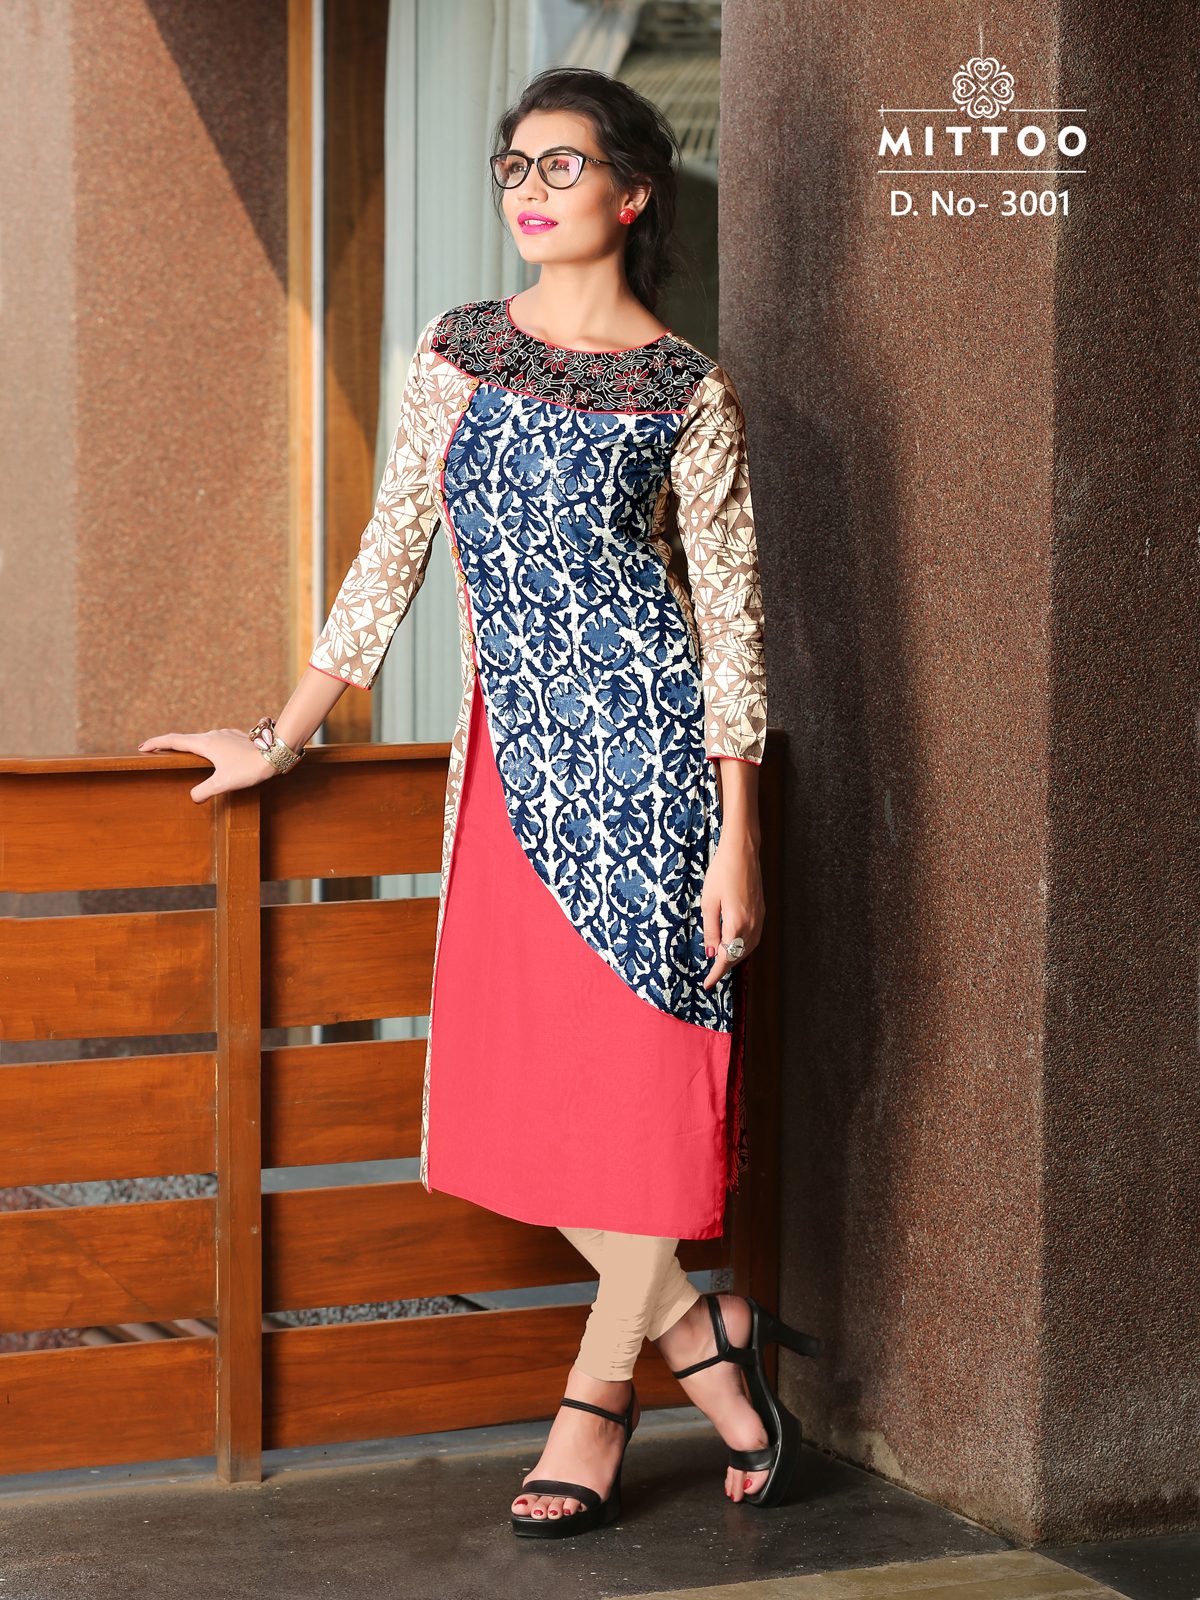 Mittoo-Pihoo-New Arrival Designer Cotton Dhabu Multiprint Kurti